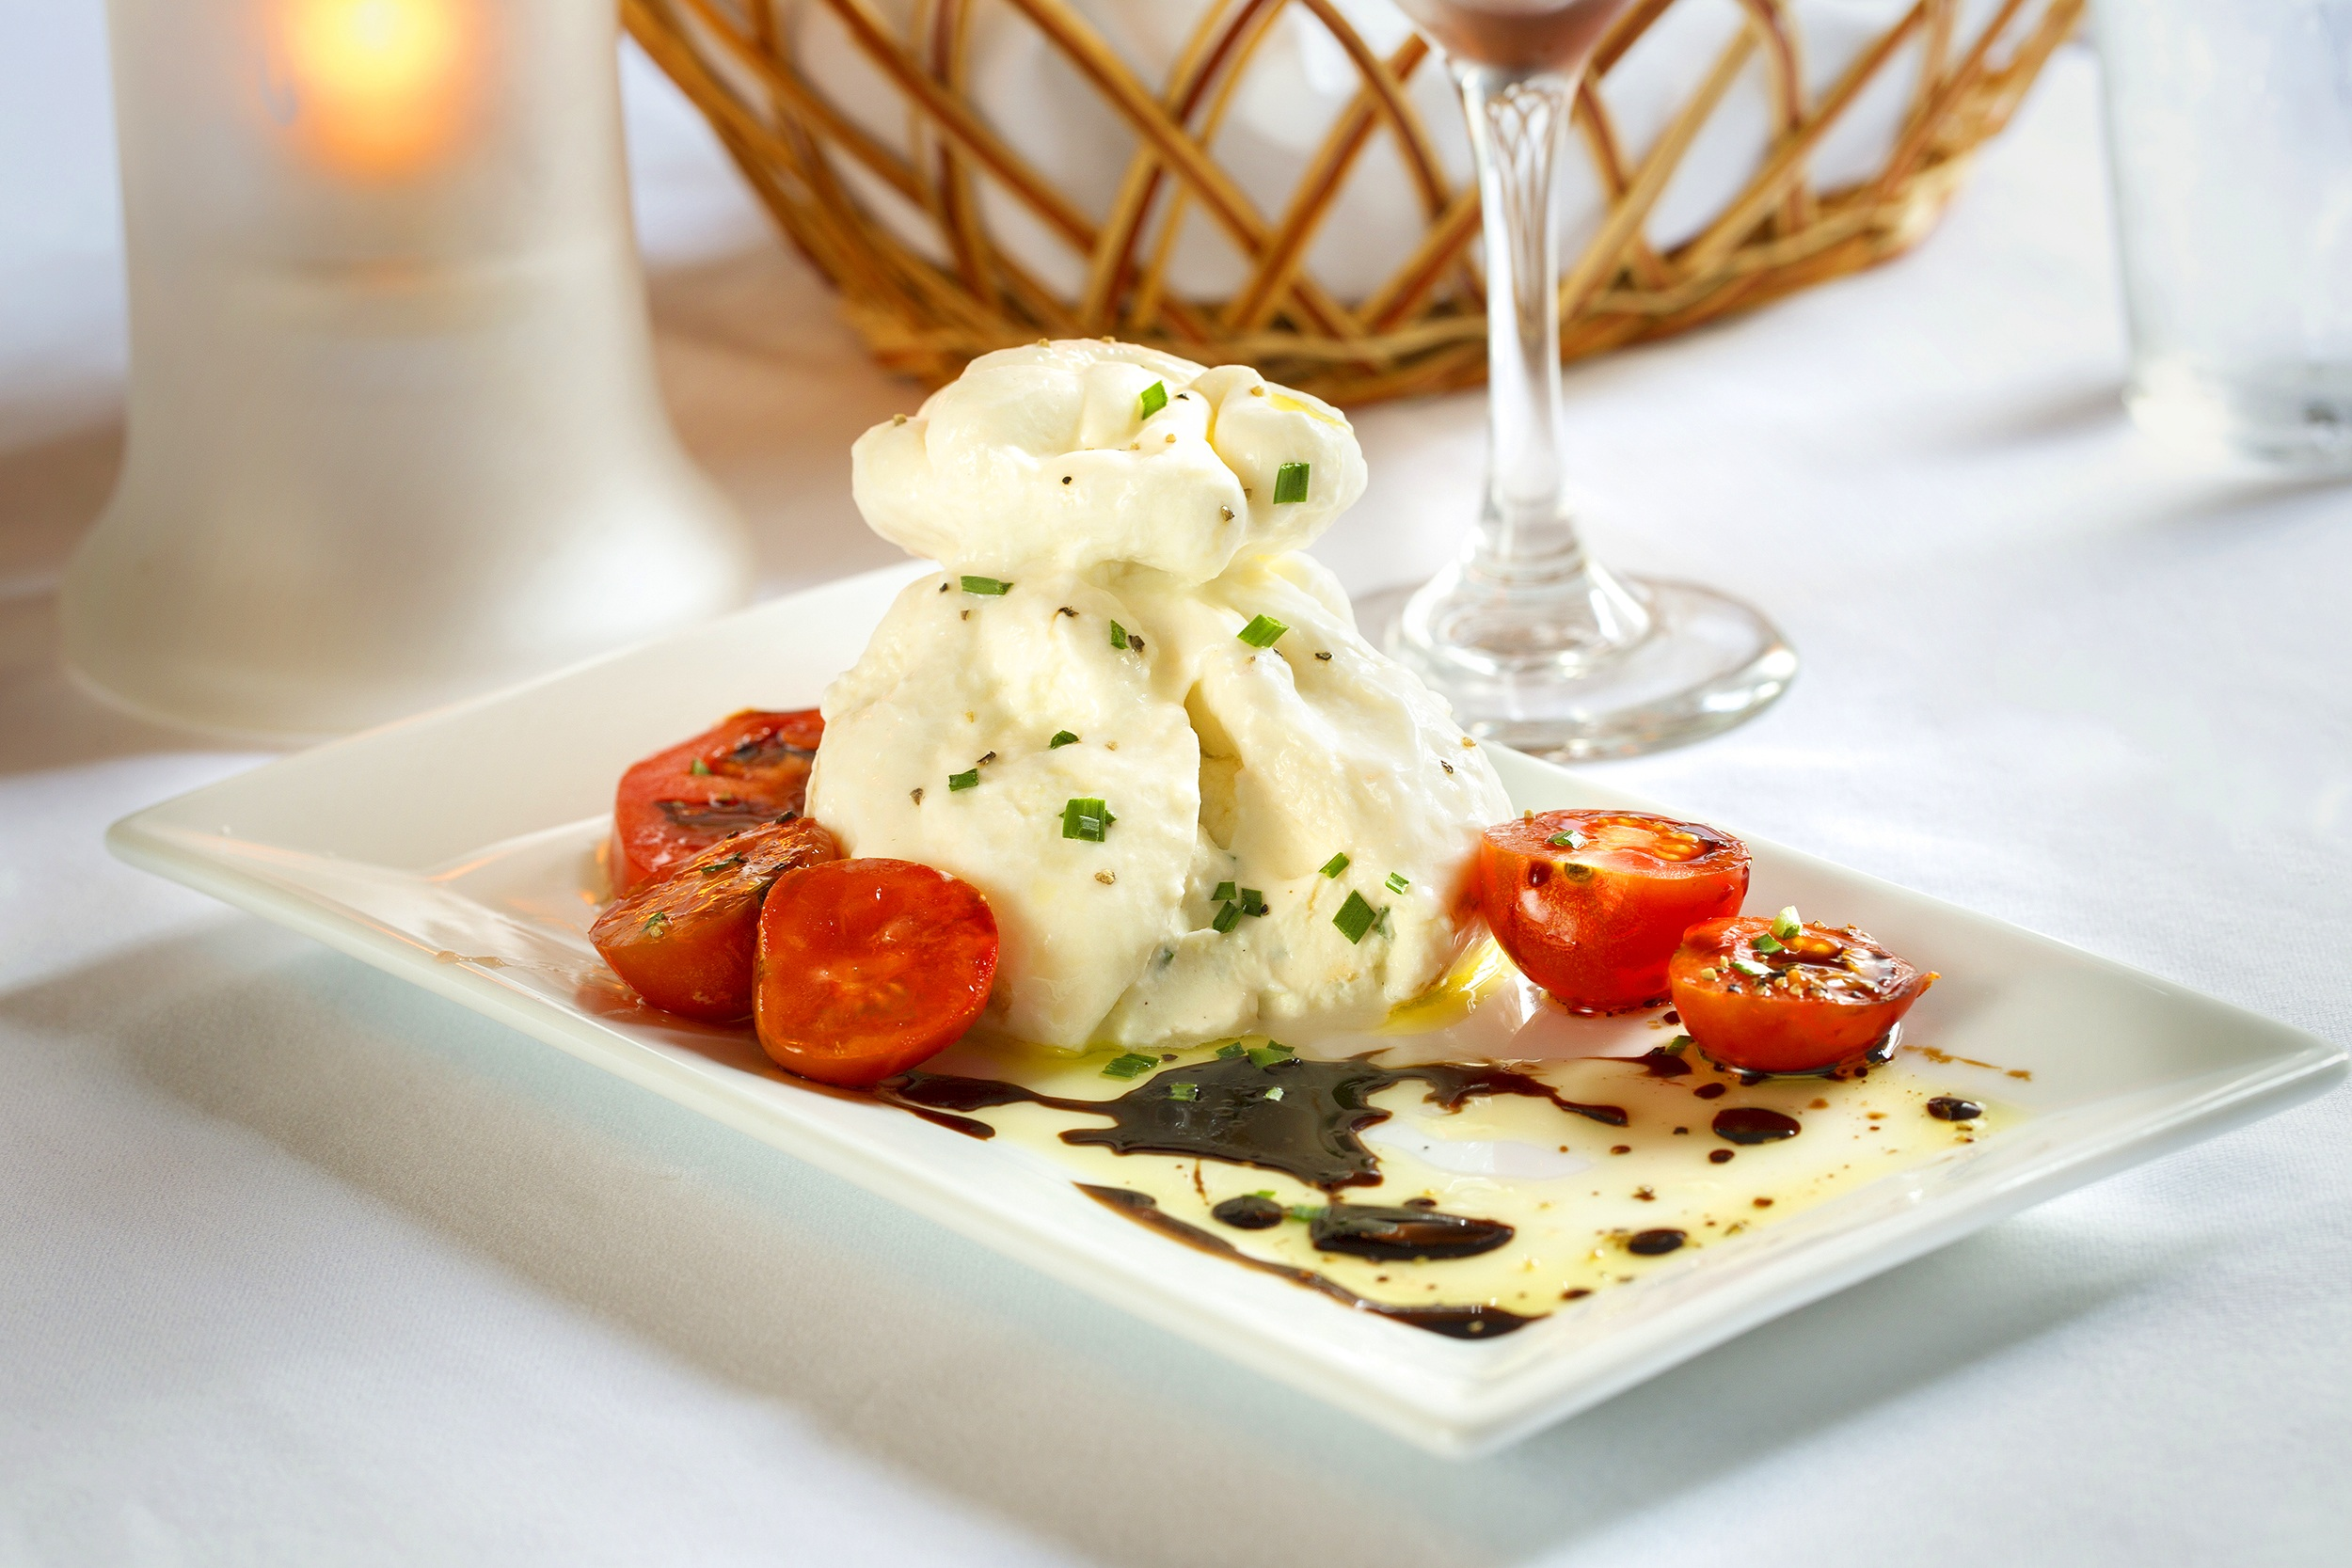 Burrata-+House+made+mozzarella+filled+with+herbed+ricotta+and+served+with+local+heirloom+tomatoes+2.jpg